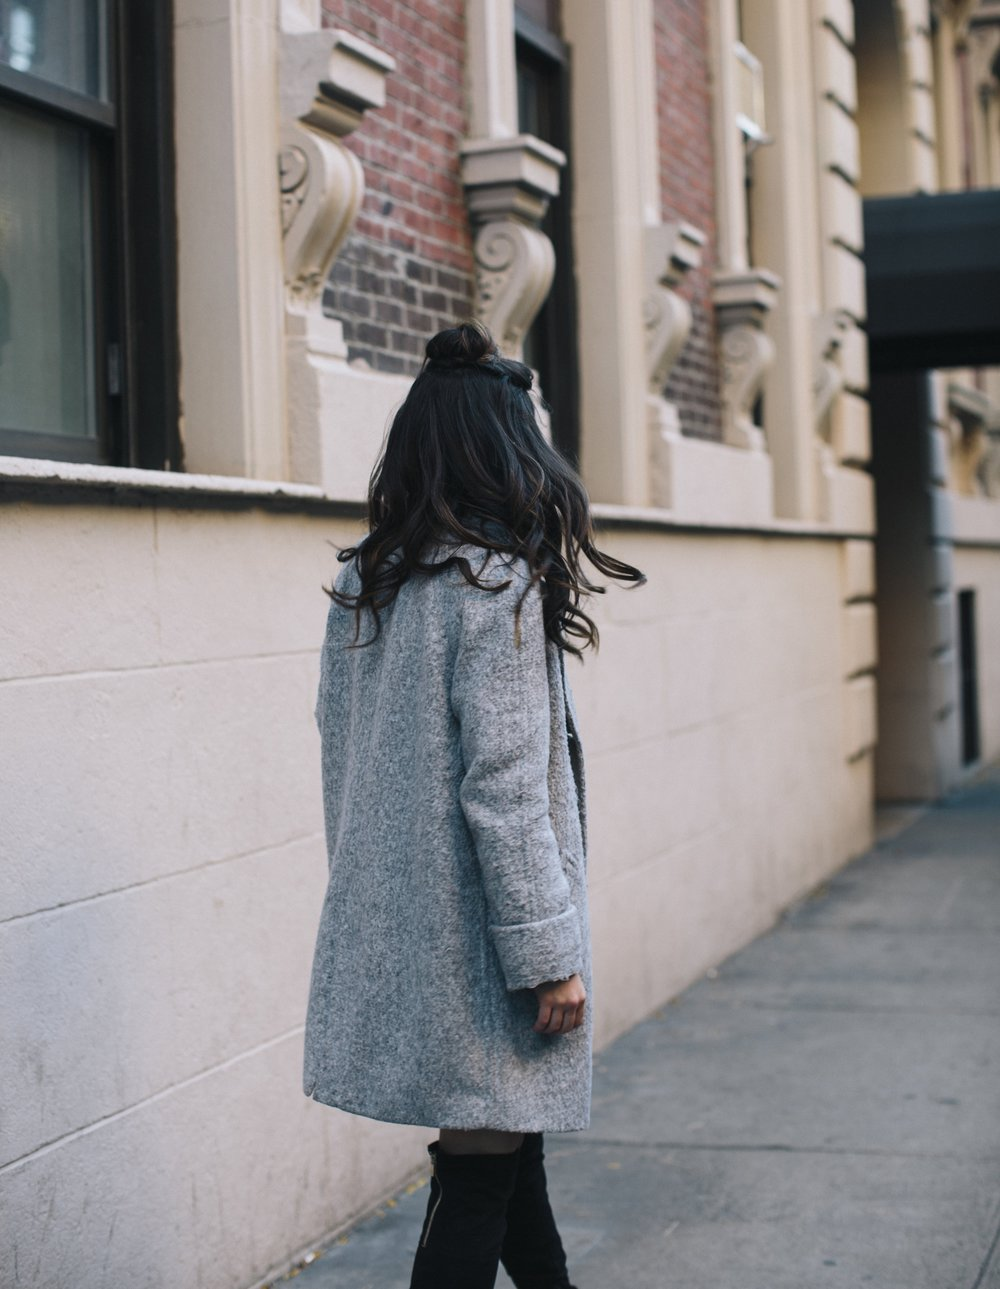 All Grey Look OTK Boots Why I Hate Fashion Week Esther Santer Fashion Blog Louboutins & Love NYC Street Style Blogger Outfit OOTD Trendy Sweatshirt Dress Topknot Coat Women Girl Shoes Shopping Zara Monochome Beauty Look Accessories Winter Wear Clothes.jpg